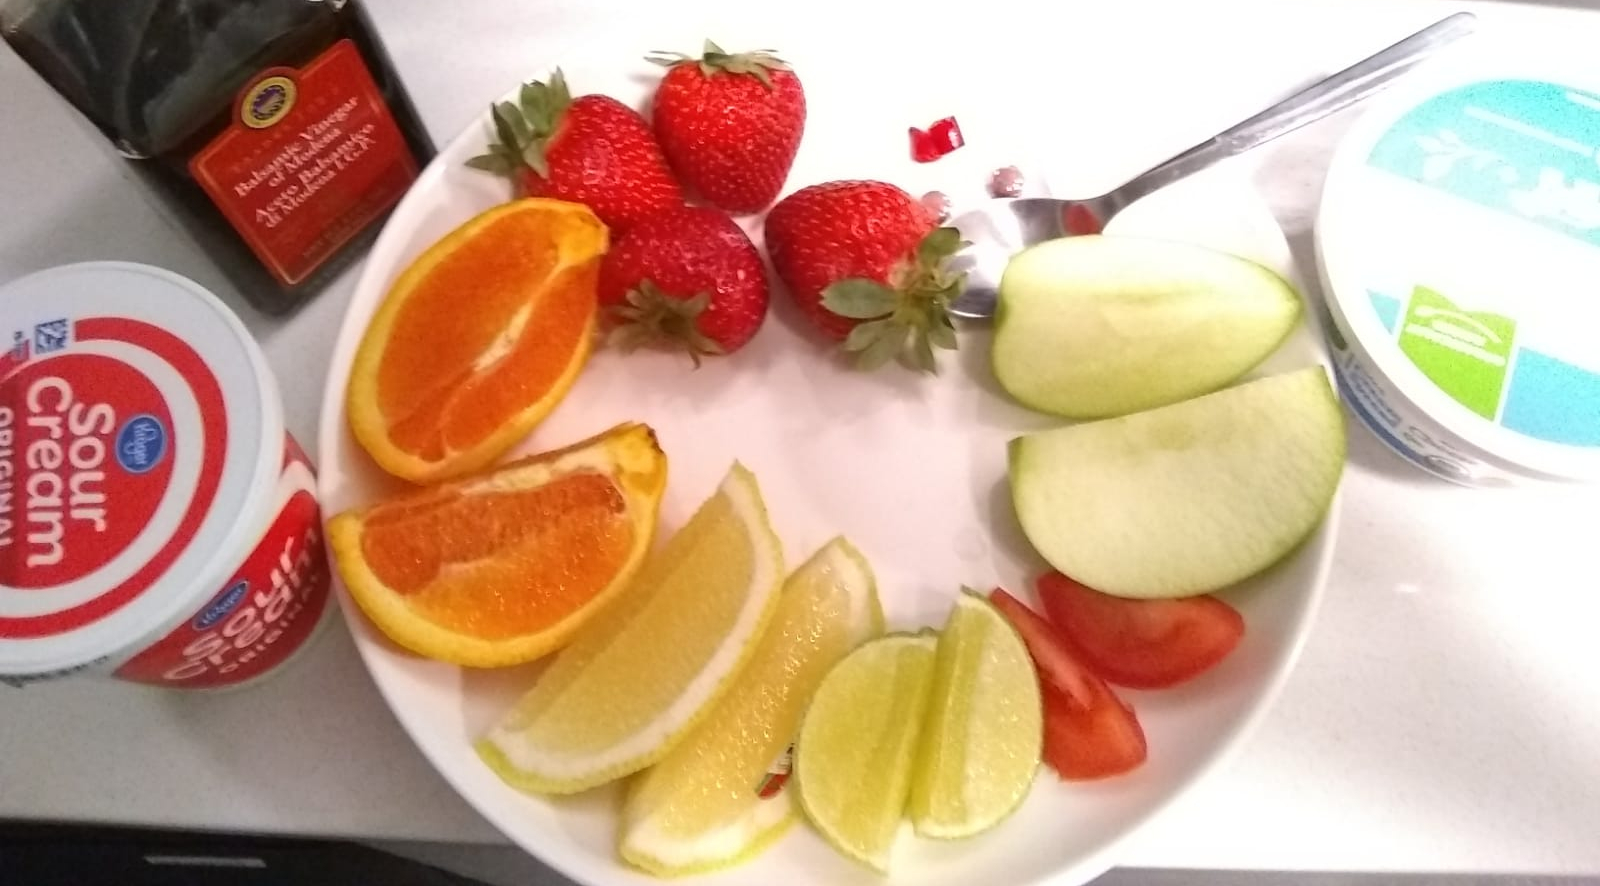 Sour foods: balsamic vinegar, sour cream, strawberries, orange slices, lemon slices, lime slices, tomato slices, granny smith apples, chili pepper and cream cheese.